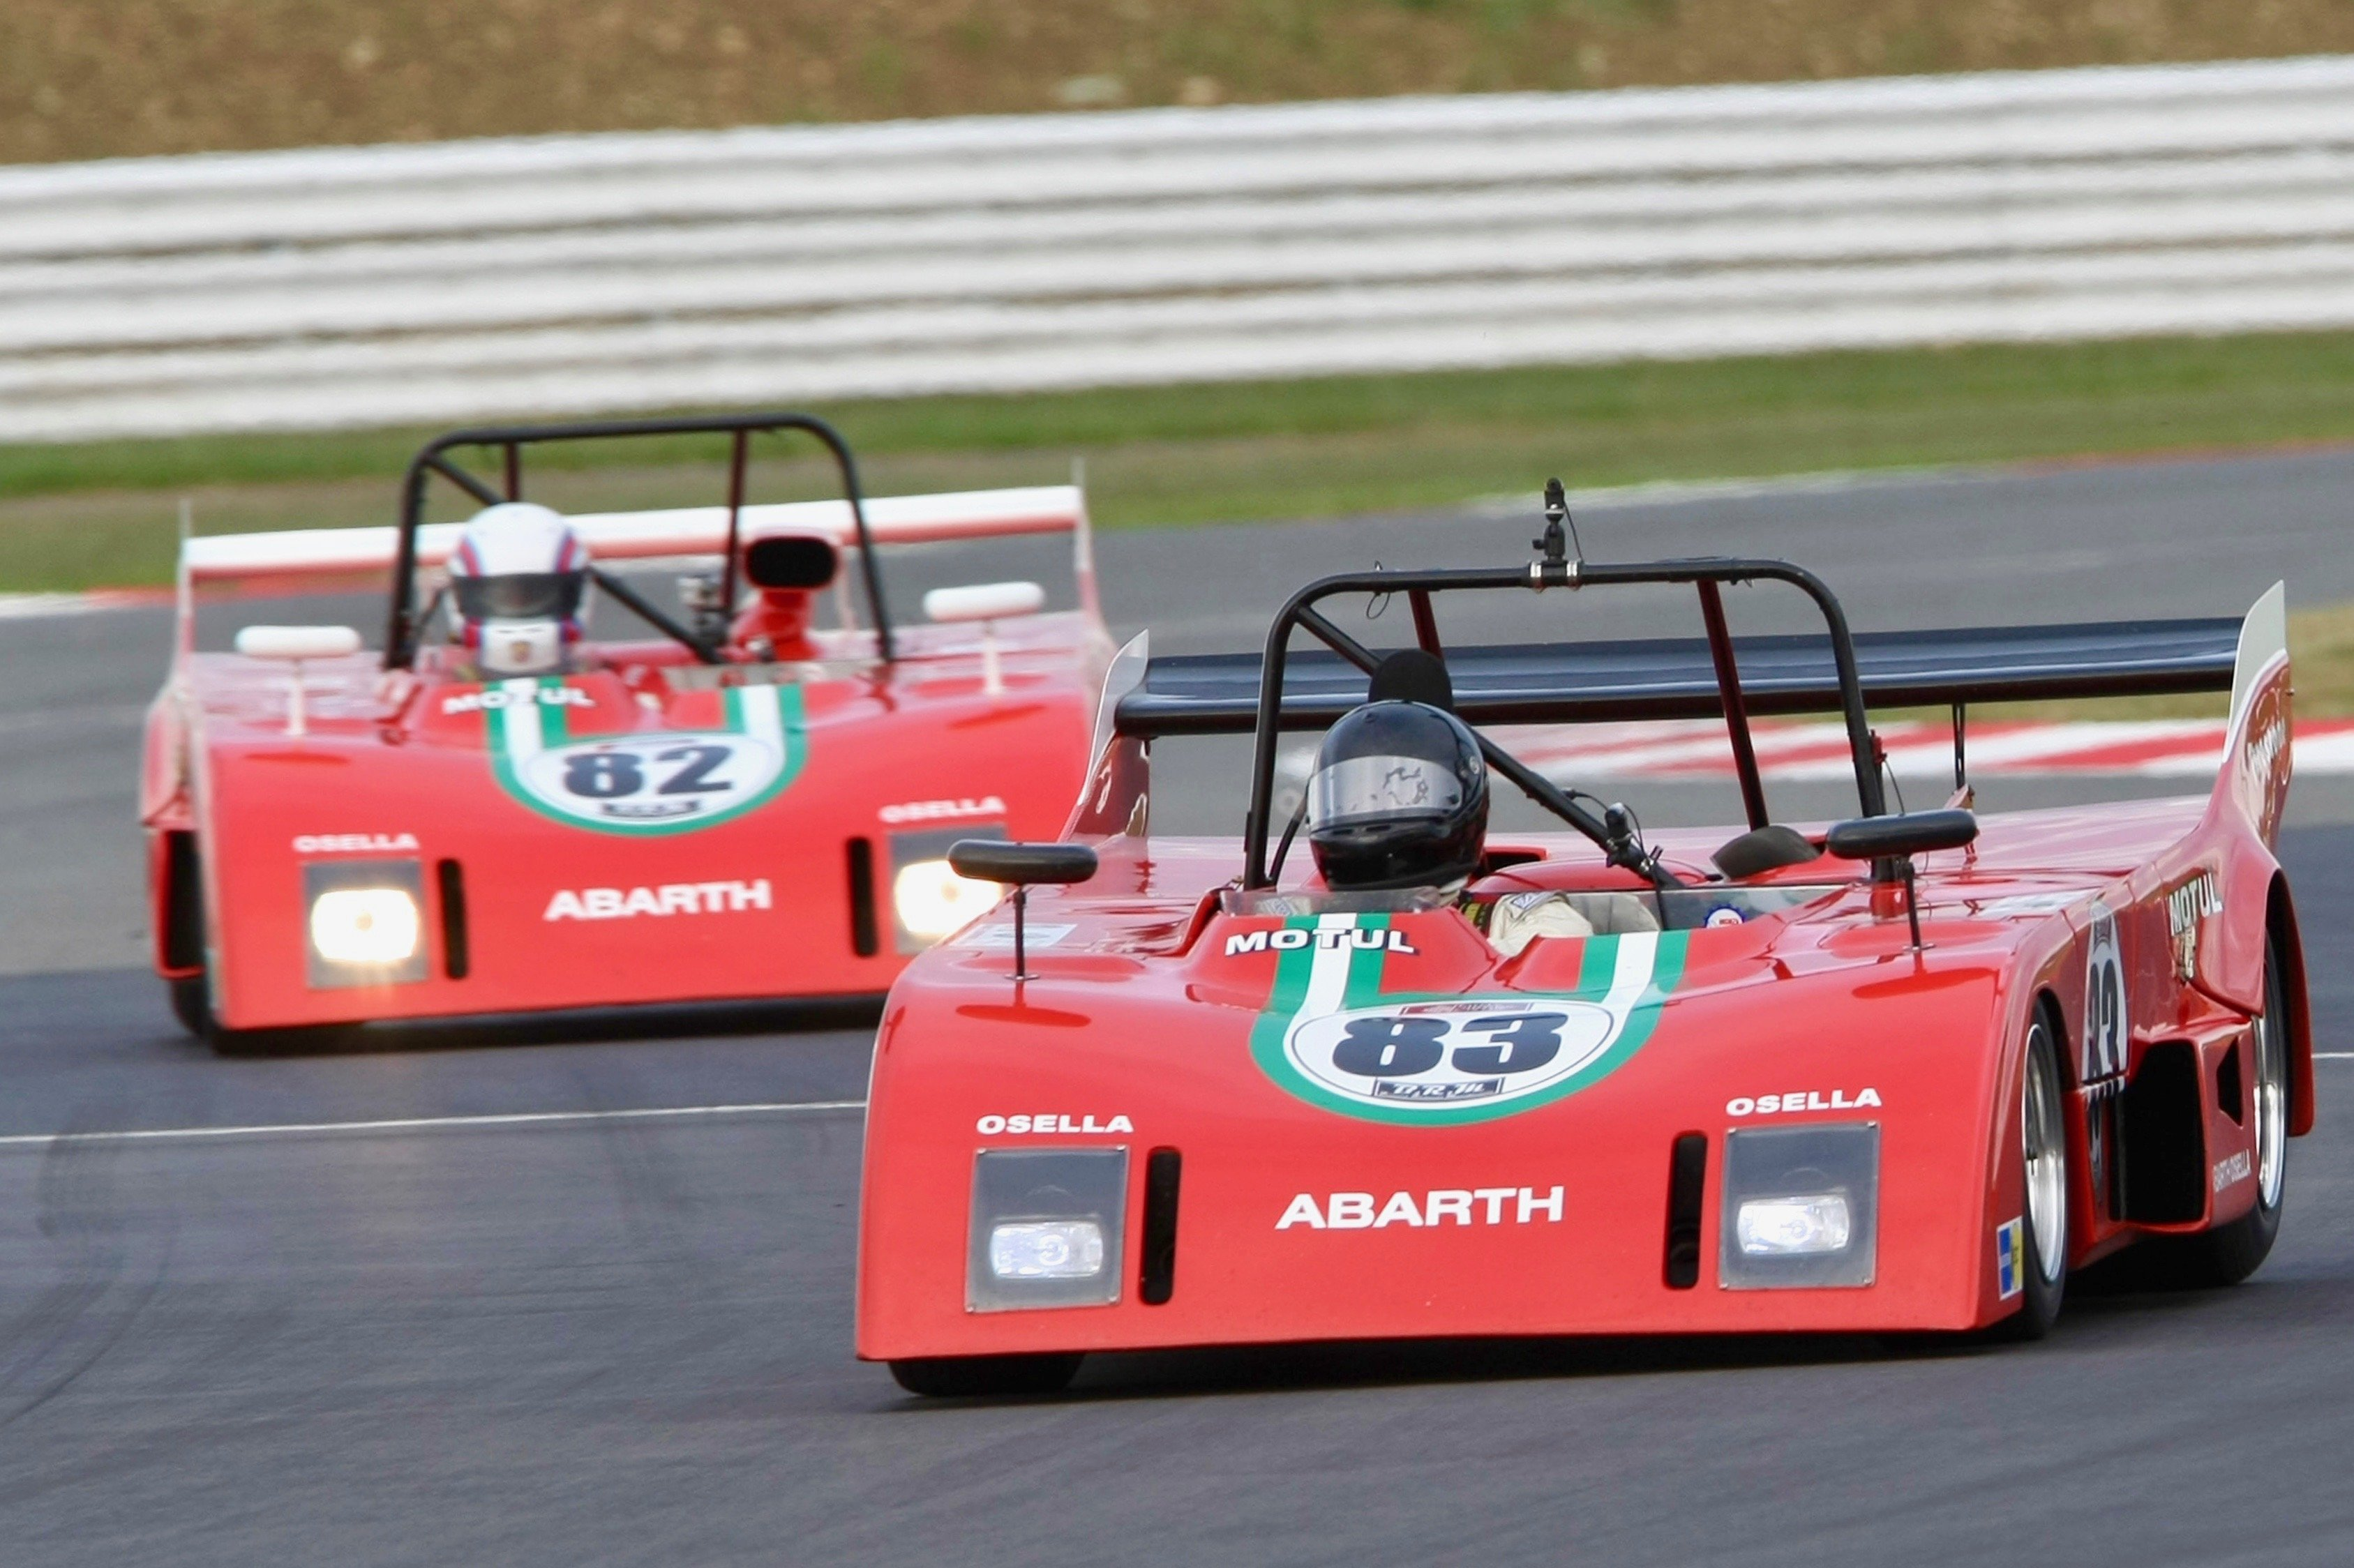 Abarth Group 5 cars.